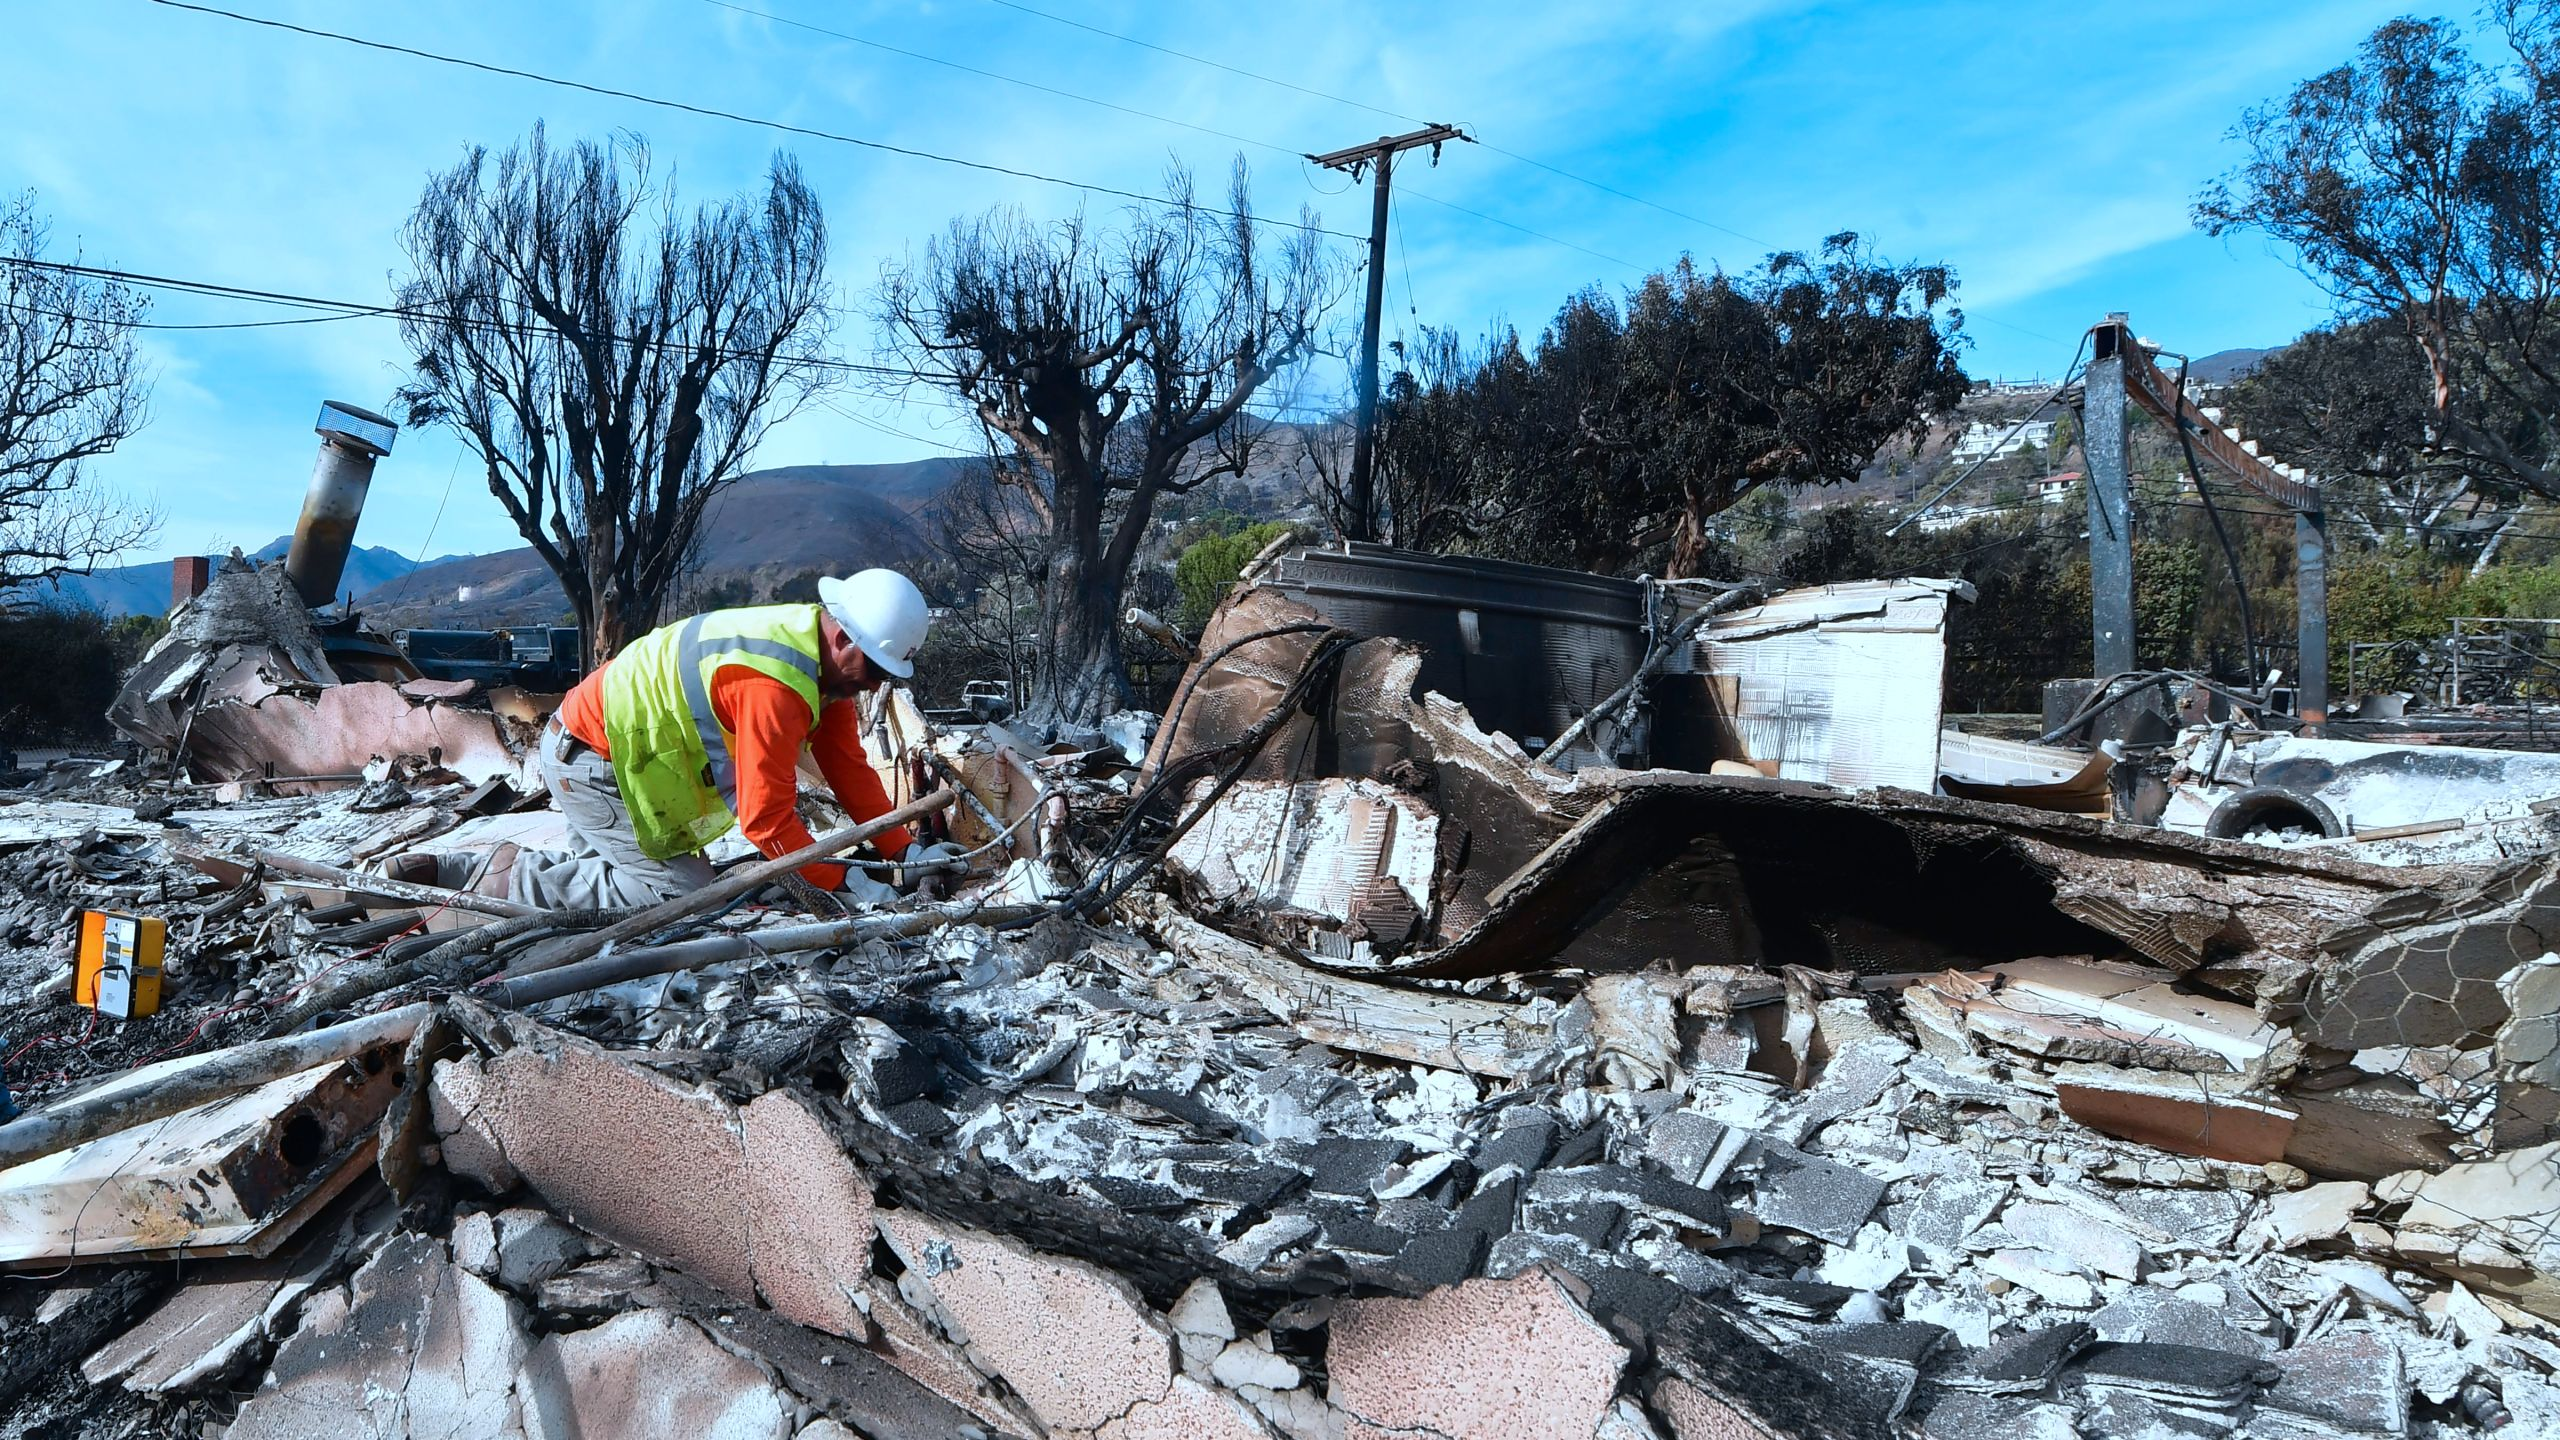 A worker checks gas lines amid the rubble of a home burnt down in the Woolsey Fire on Filaree Heights Road in Malibu on Nov. 13, 2018. (Credit: Frederic J. Brown/AFP/Getty Images)